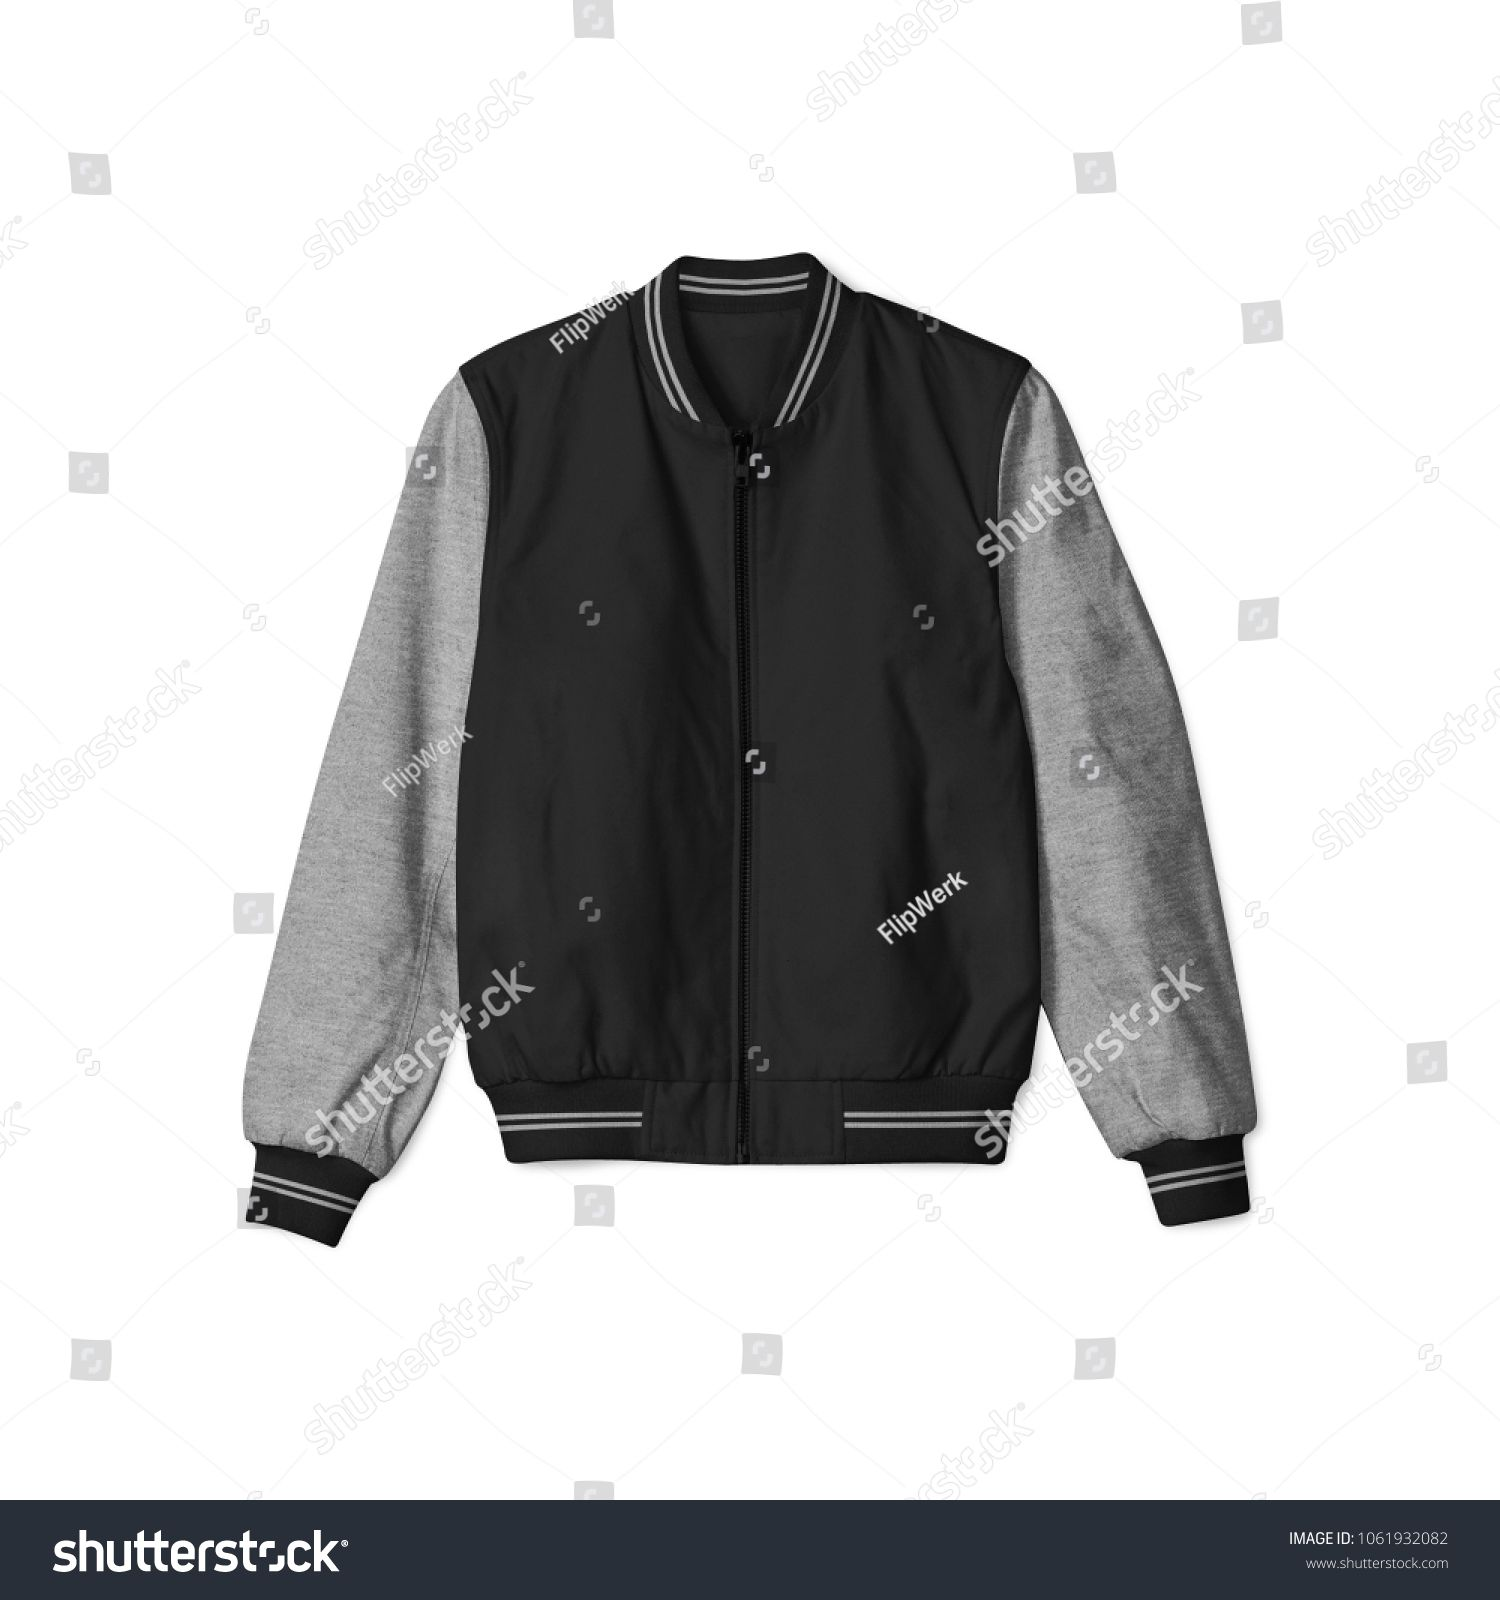 Download Blank Jacket Bomber Baseball Black Heather Grey Color On White Background In Front View Isolated For Mockup Template Black Heather Bomber Jacket Jackets Black